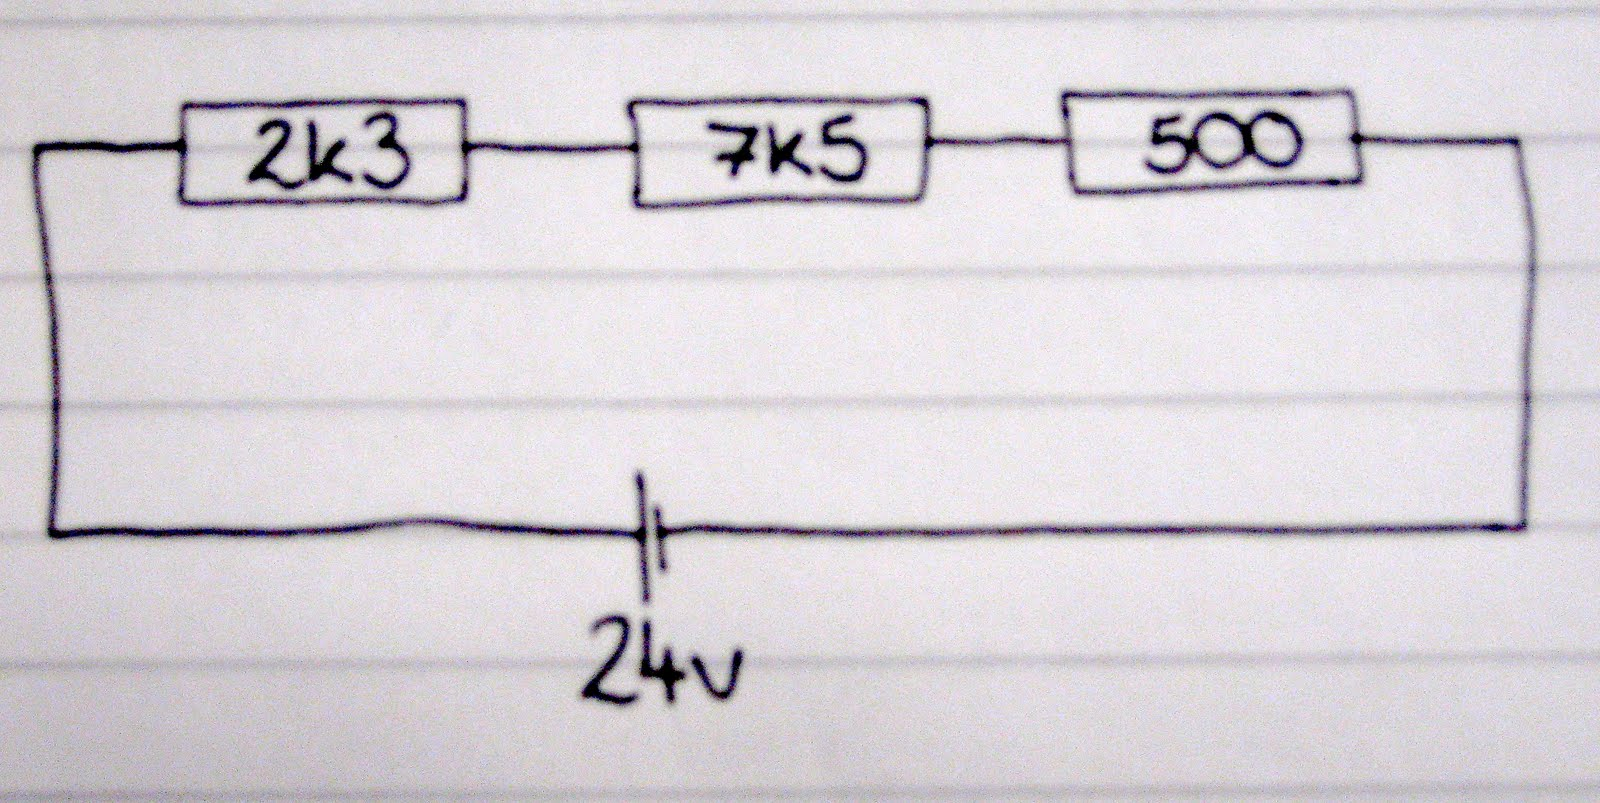 4cr Technological Studies March 2012 The Combined Resistance Of Resistors In Series Is Sum All Because Are End To A Circuit Find Total Resistances